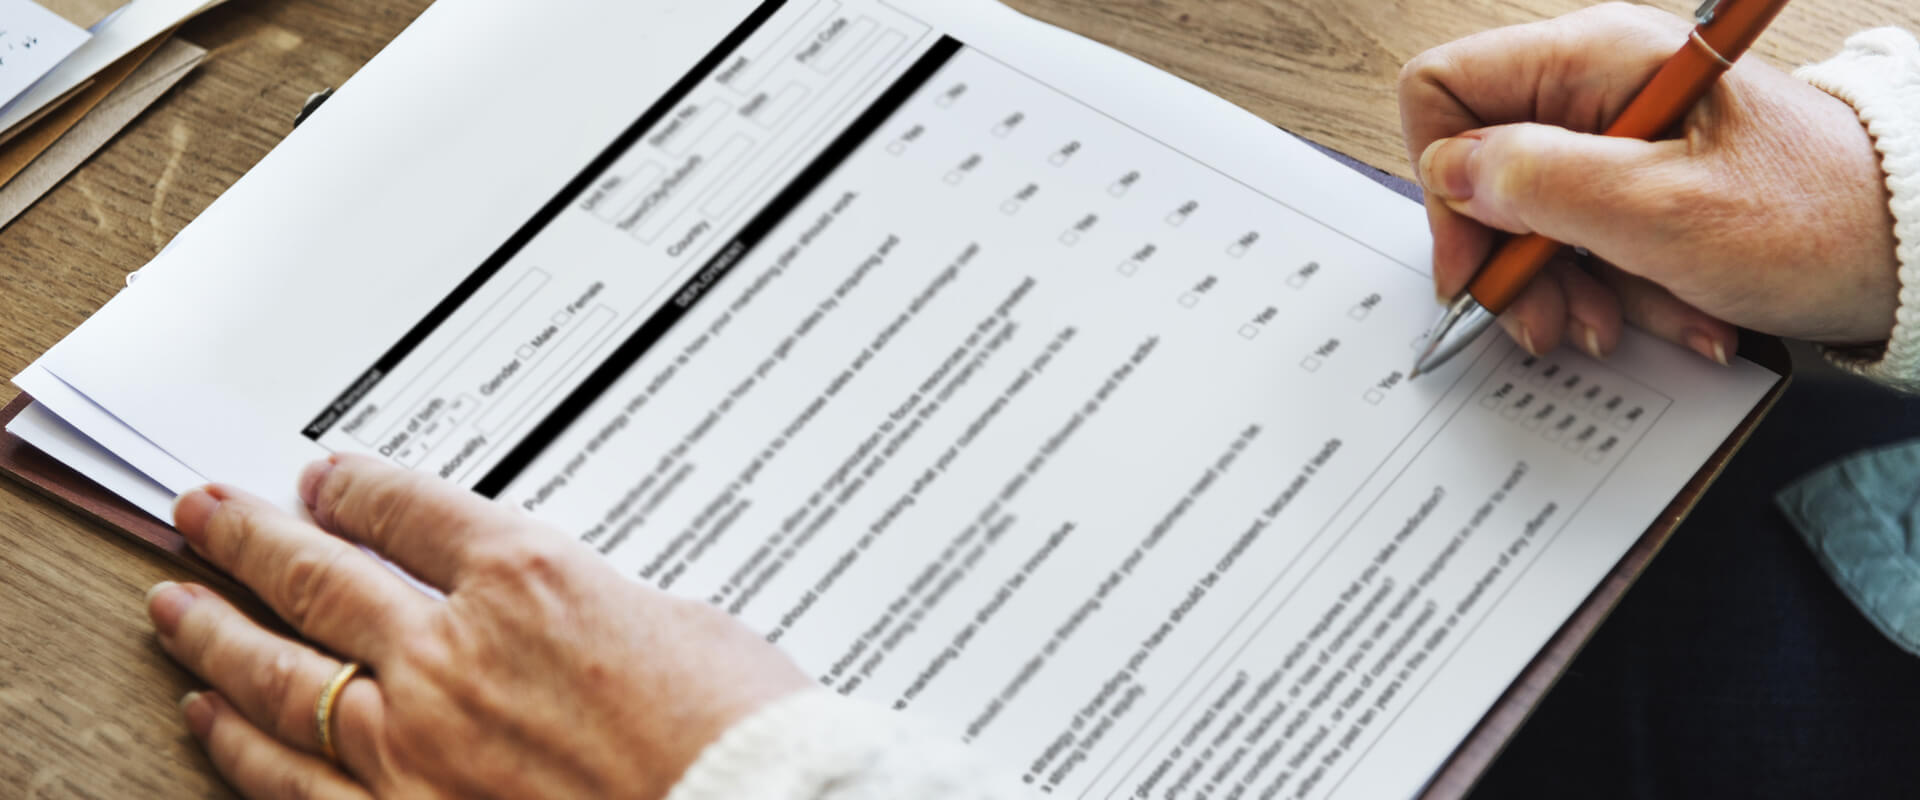 Patient filling medical forms